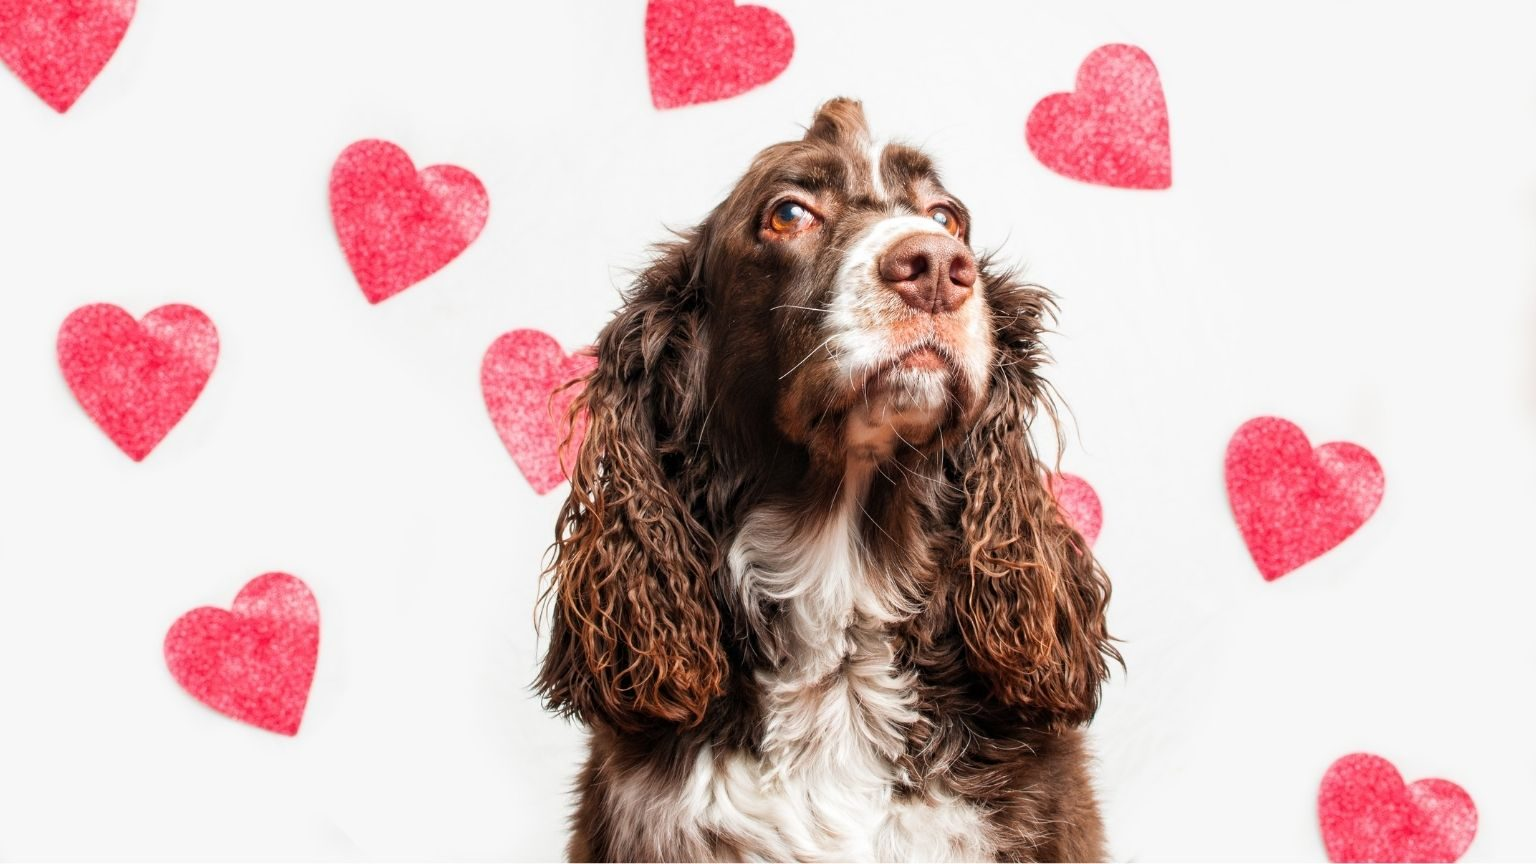 Dog with hearts in background